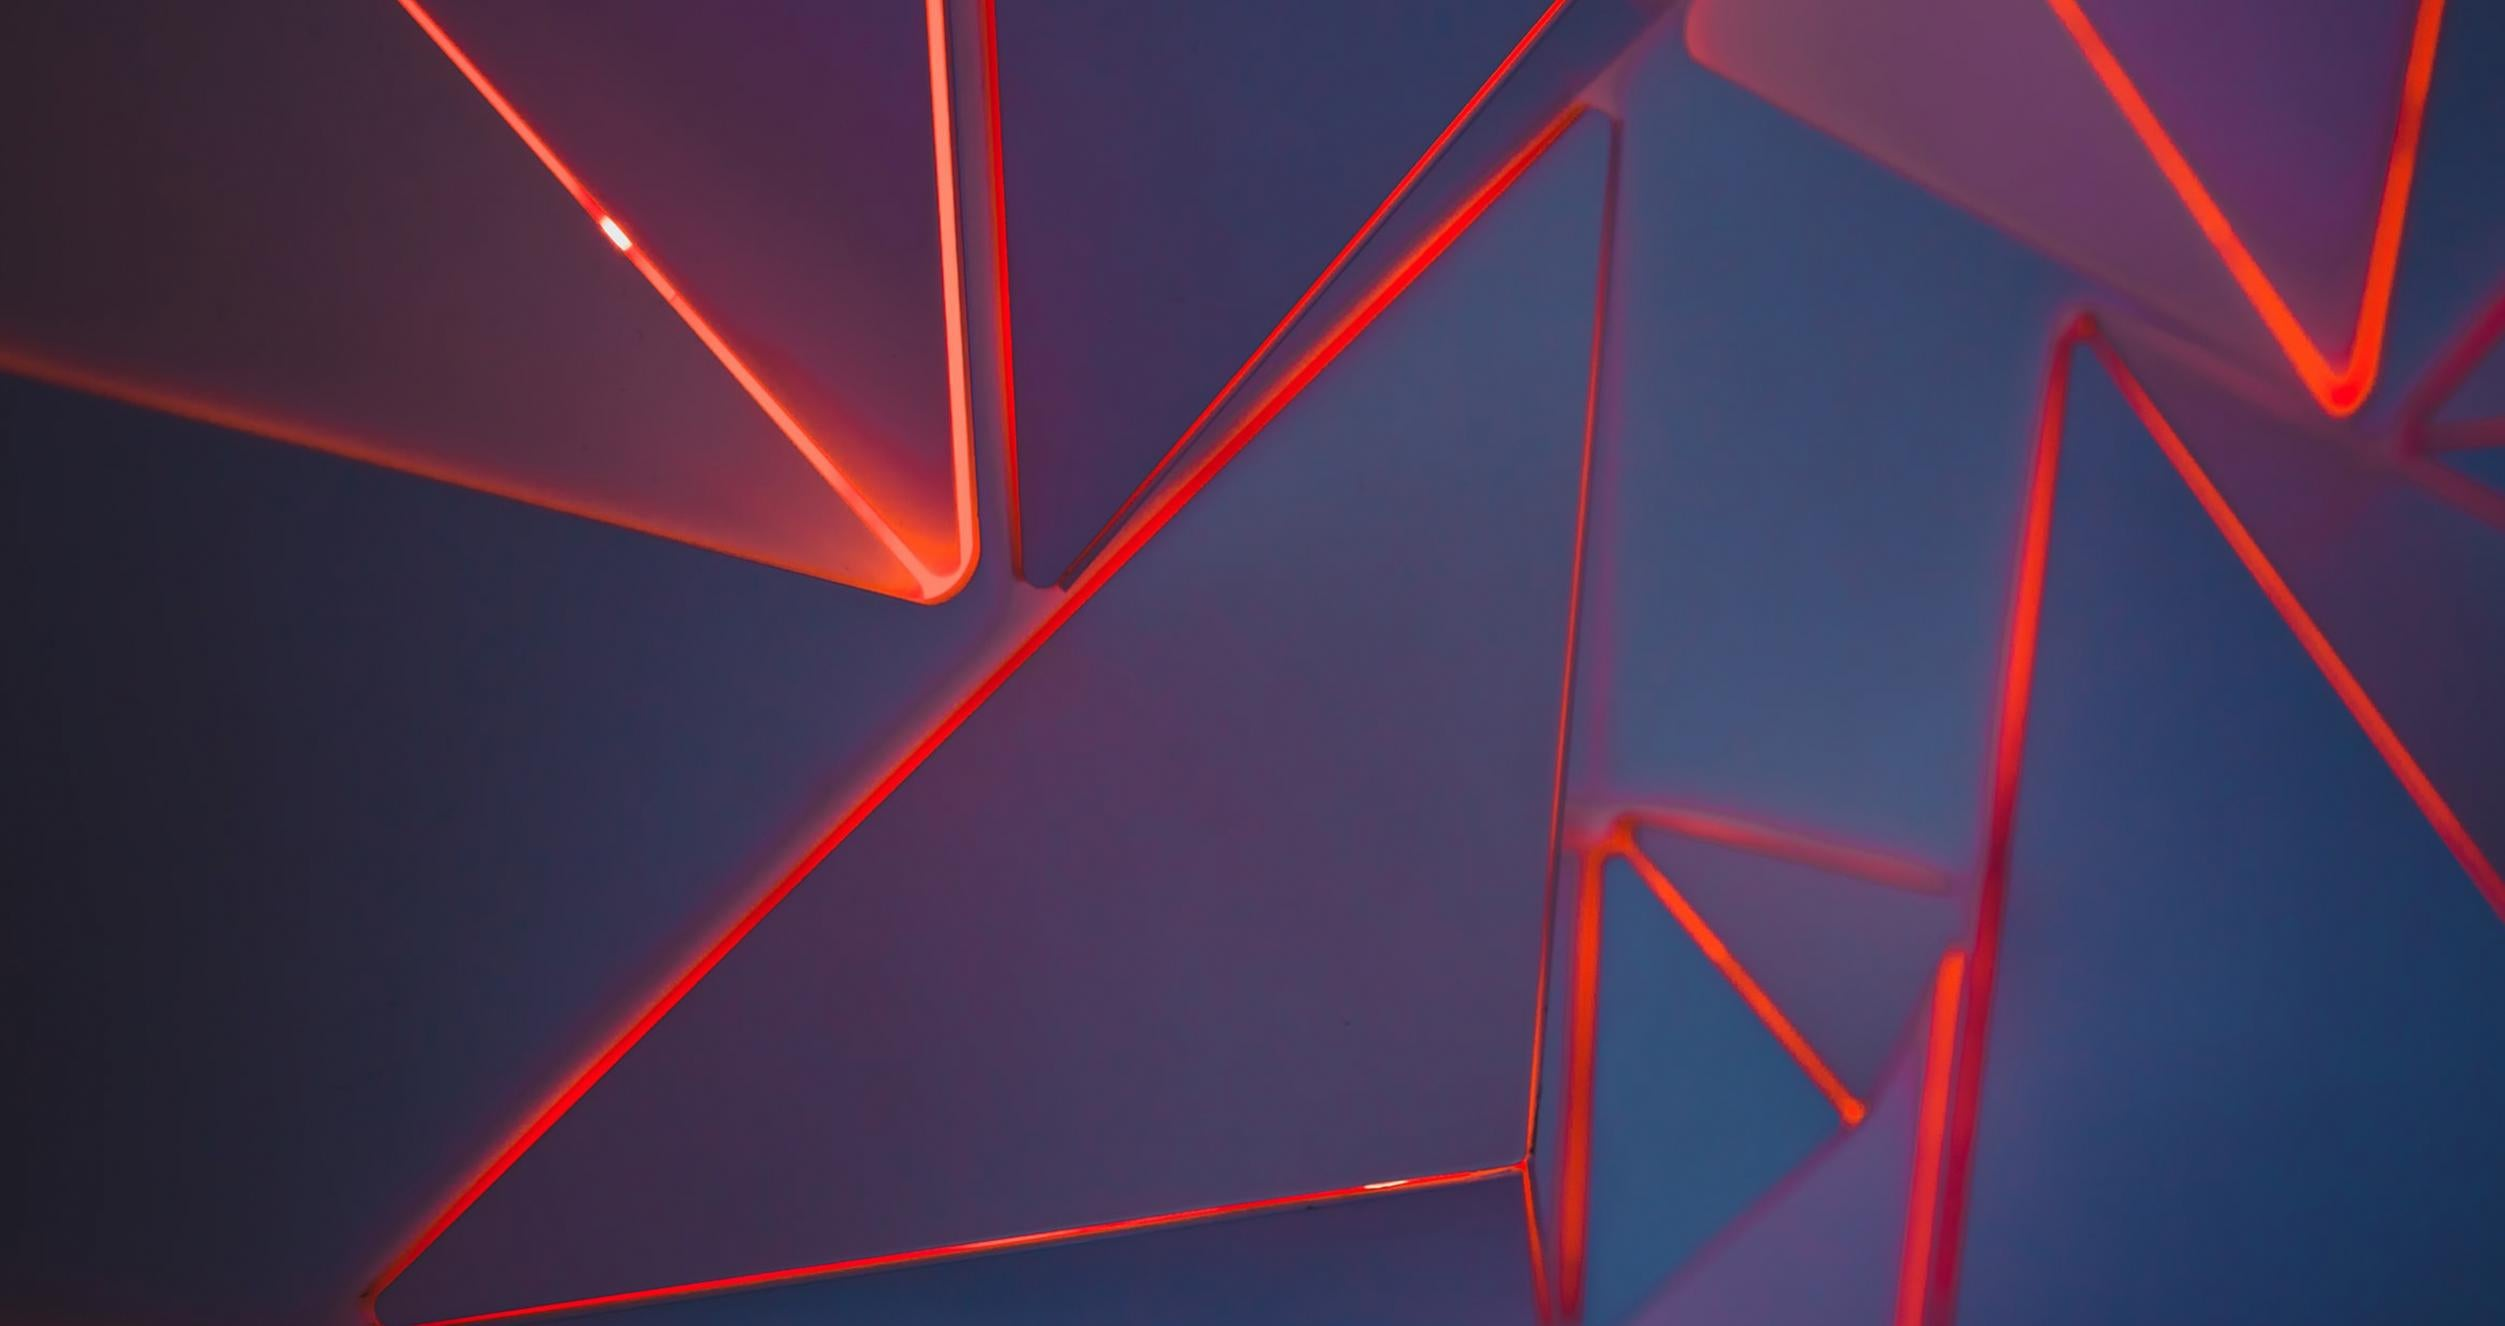 Abstract Red Lights on Blue Background